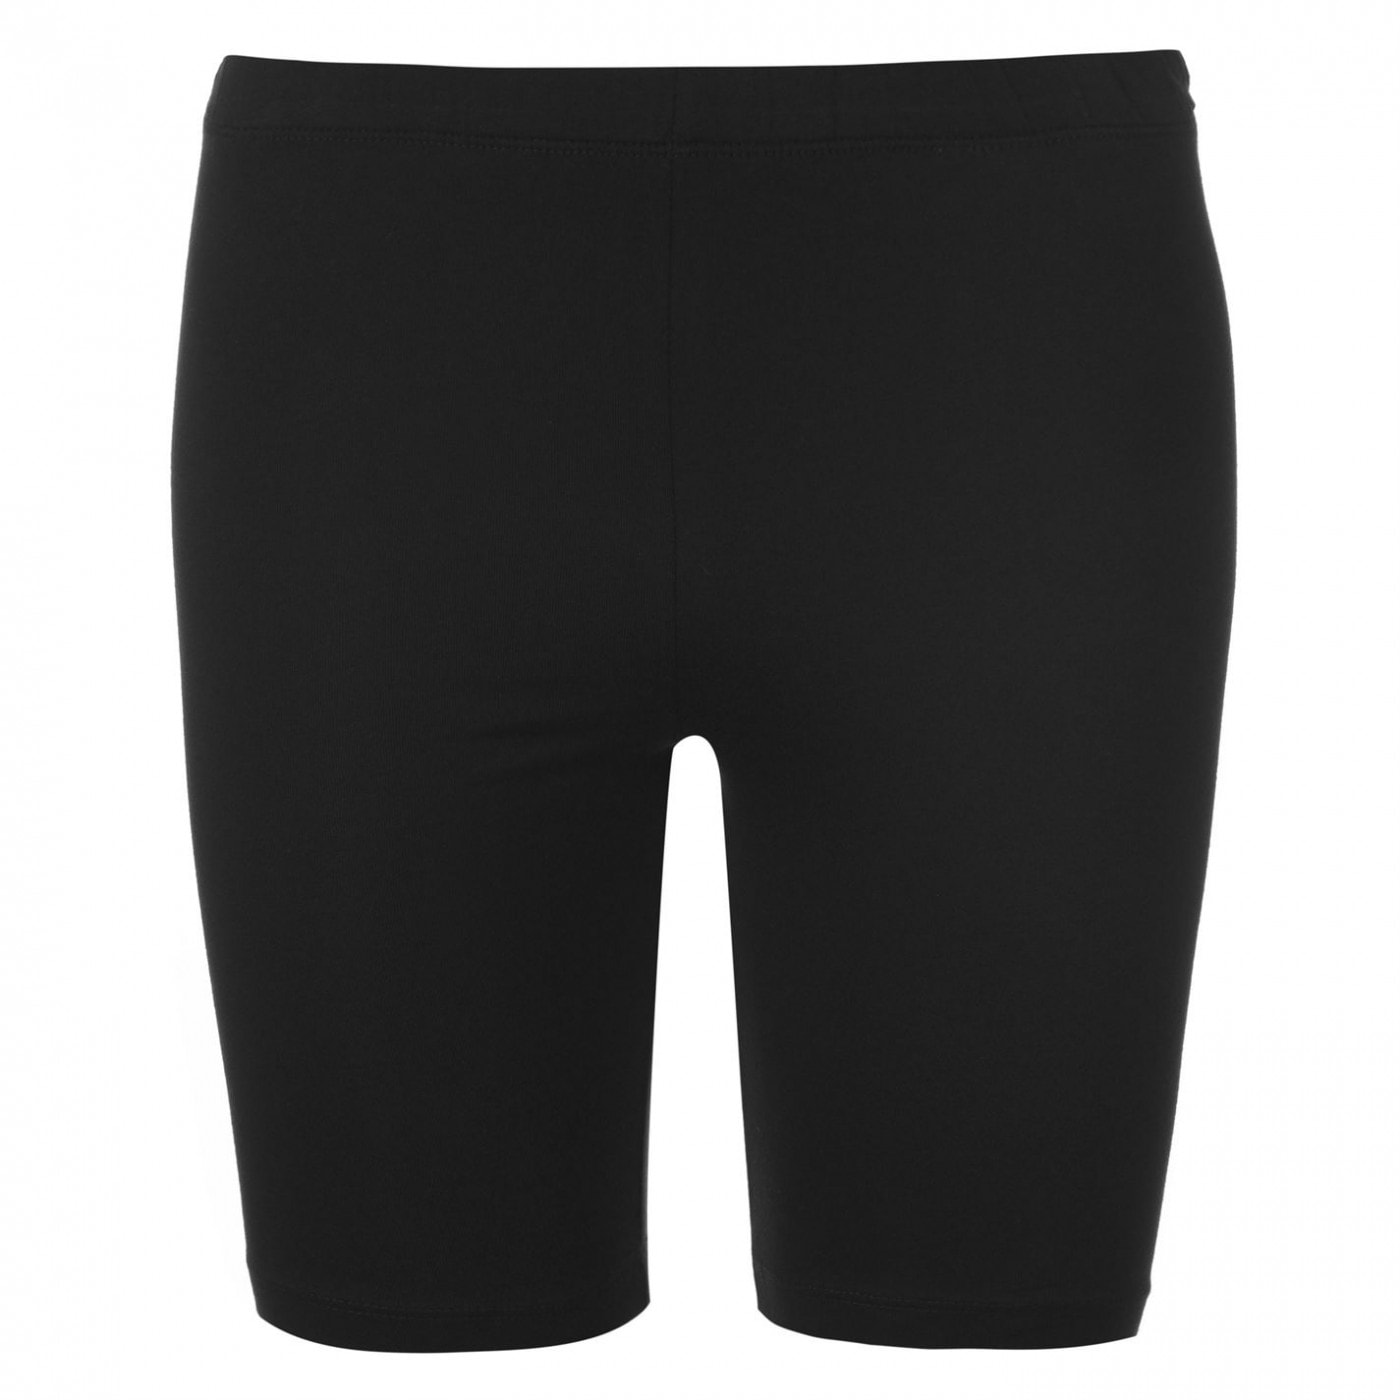 JDY Ava Cycle Shorts Ladies